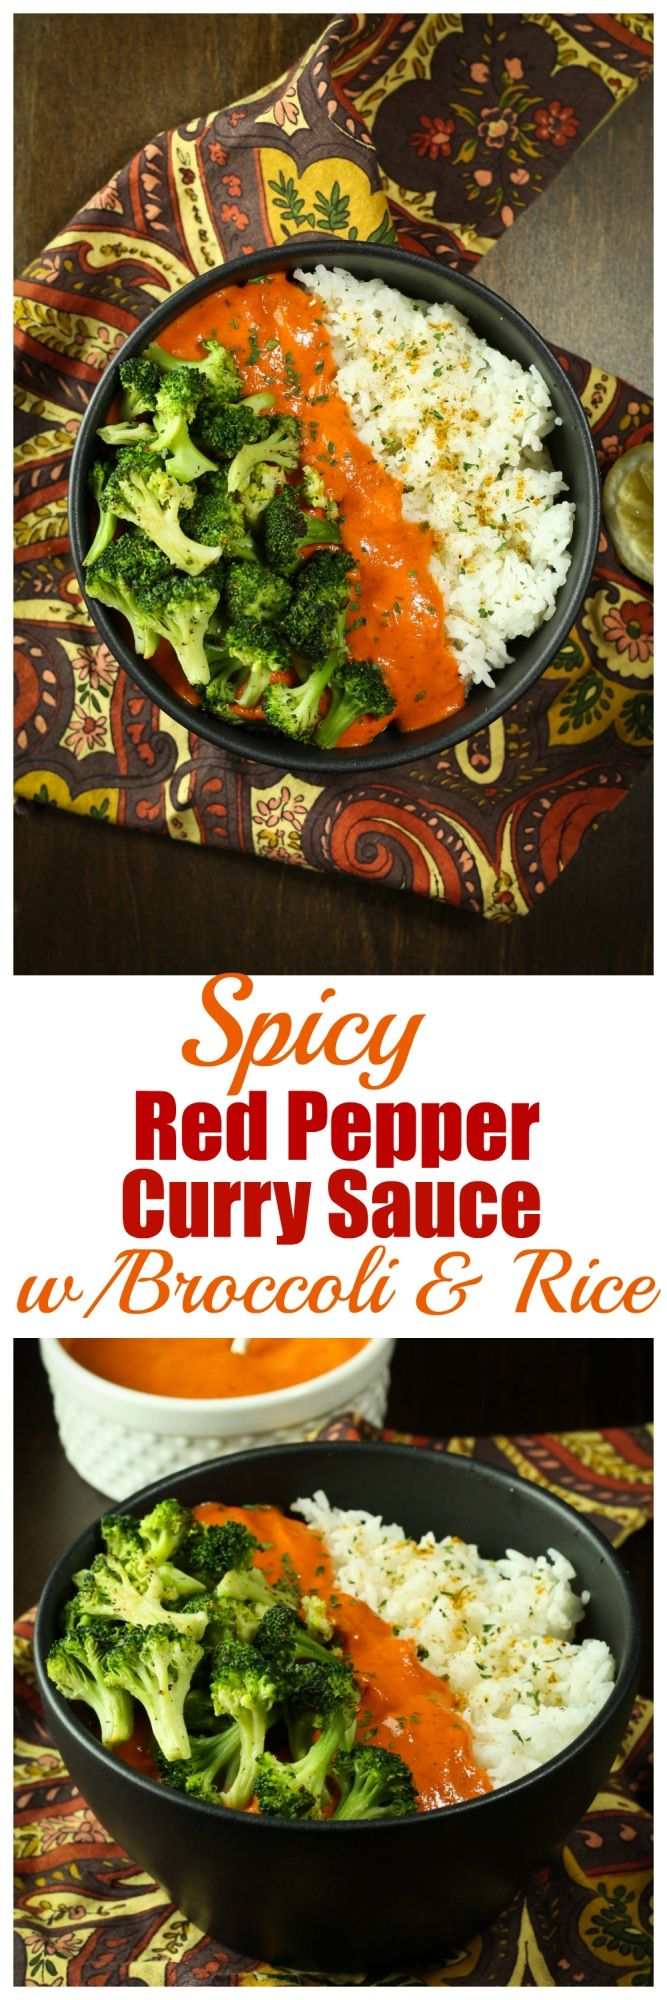 A Spicy Red Pepper Curry Sauce made with roasted red bell peppers and served over fluffy white rice and roasted broccoli. So incredibly comforting and completely vegan and oil-free. Anybody in the mood for some smoky roasted bell peppers turned into a delicious homemade and easy spicy curry sauce? Good. Me too. I hope you have your tastebuds ready, because